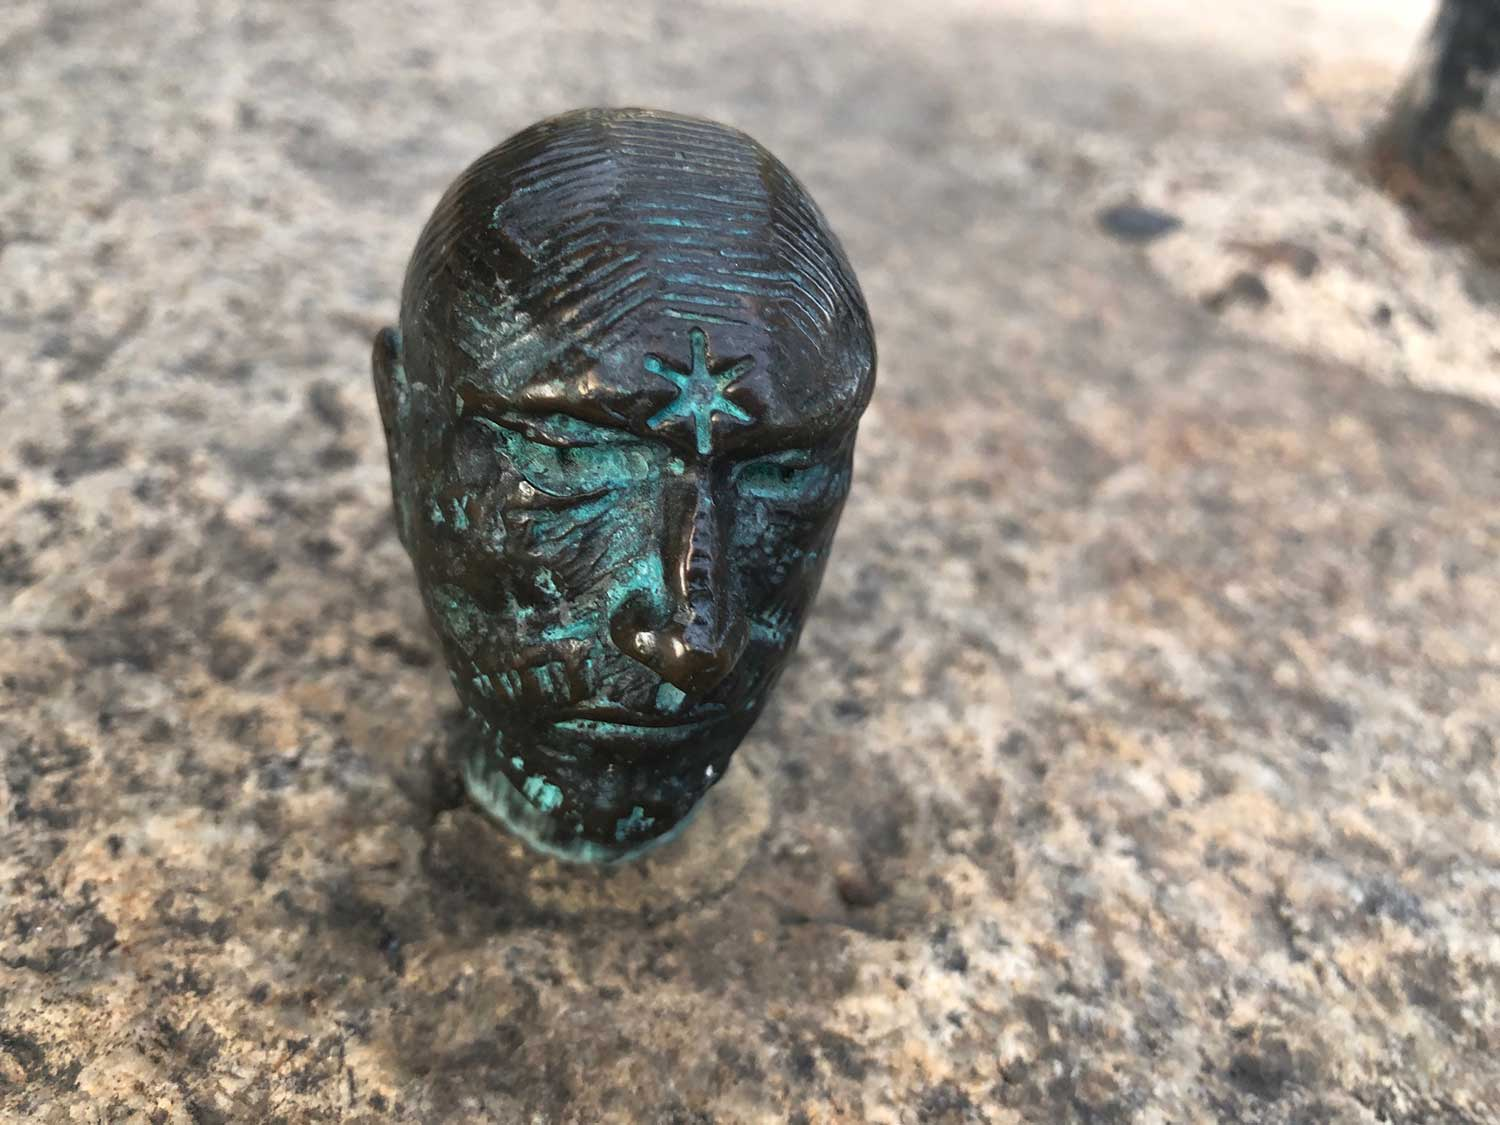 Small bronze sculpture of a man's head with a star on his forehead